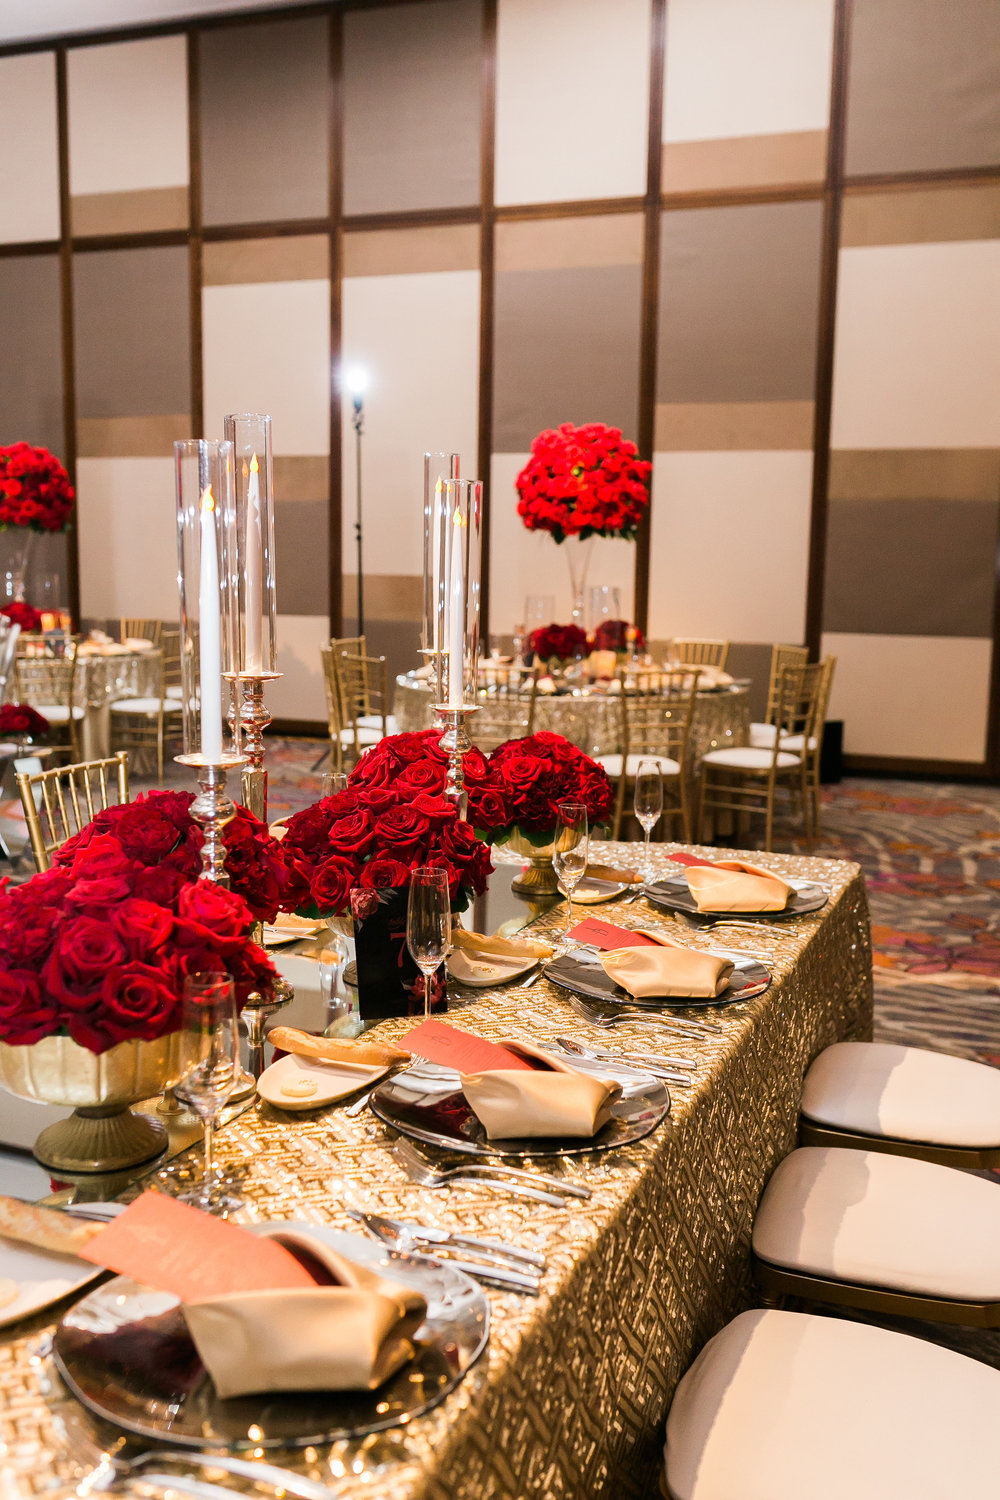 Long tables with gold linens and red roses.    Las Vegas Wedding Planner Andrea Eppolito.  www.andreaeppolitoevents.com  Photo by J.Anne Photography.  www.j-annephotography.com  As seen on The  Wedding Editorialist  Wedding Blog.